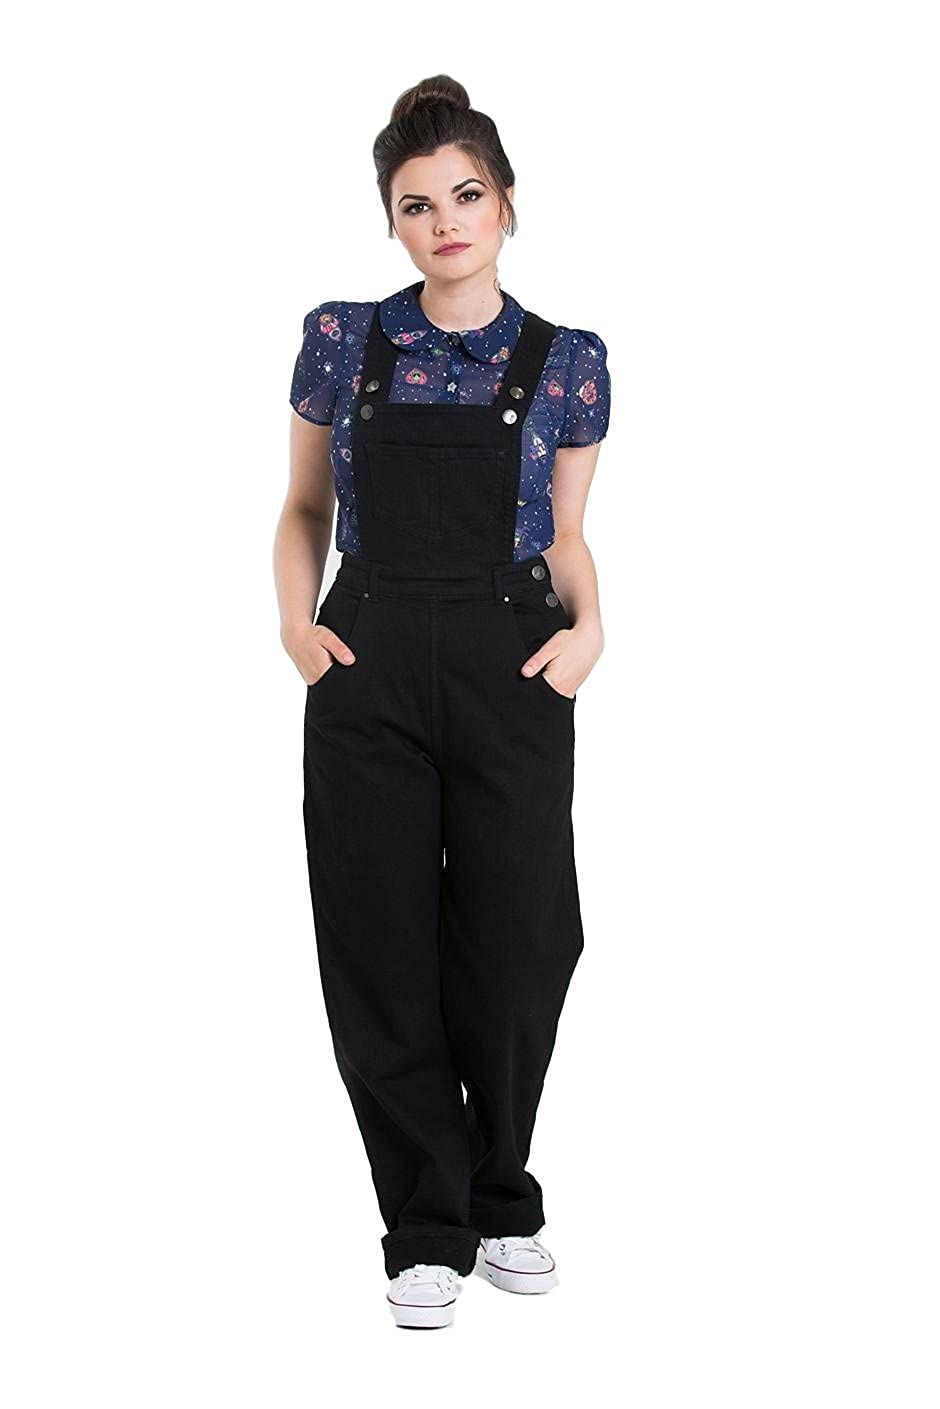 Vintage High Waisted Trousers, Sailor Pants, Jeans Hell Bunny Ella May Denim Dungarees £47.99 AT vintagedancer.com